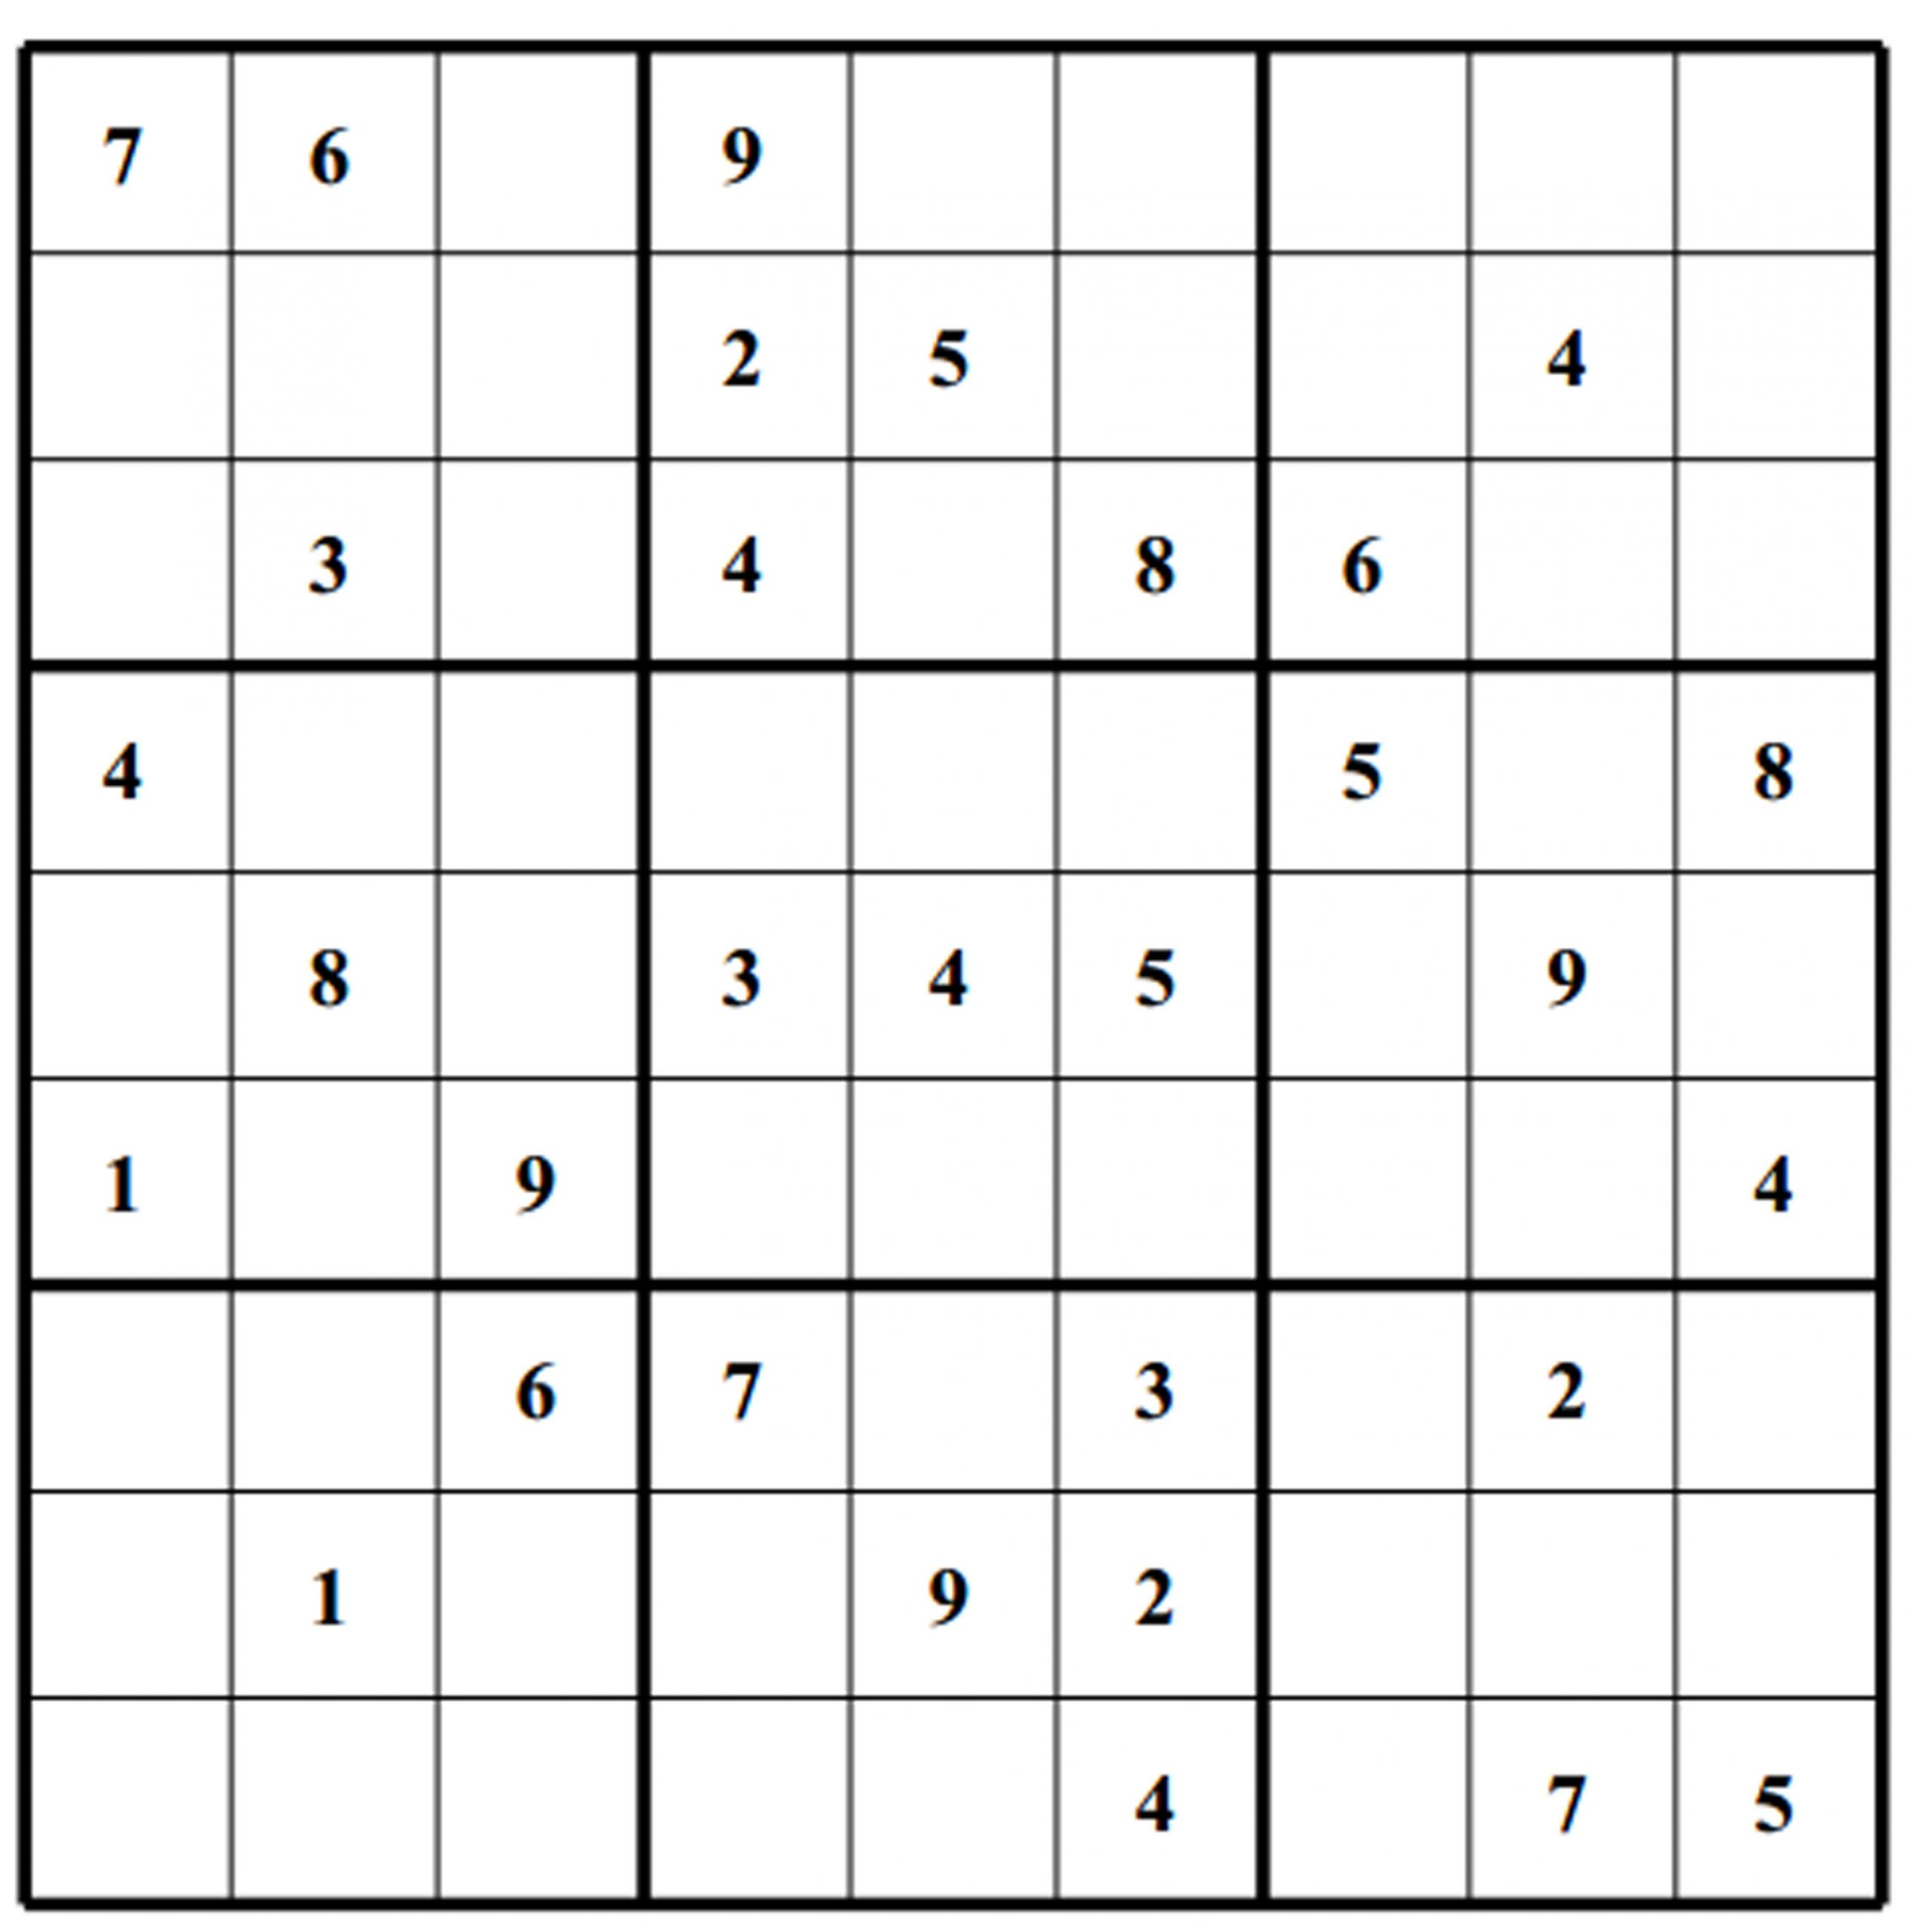 Free Sudoku Puzzles | Enjoy Daily Free Sudoku Puzzles From